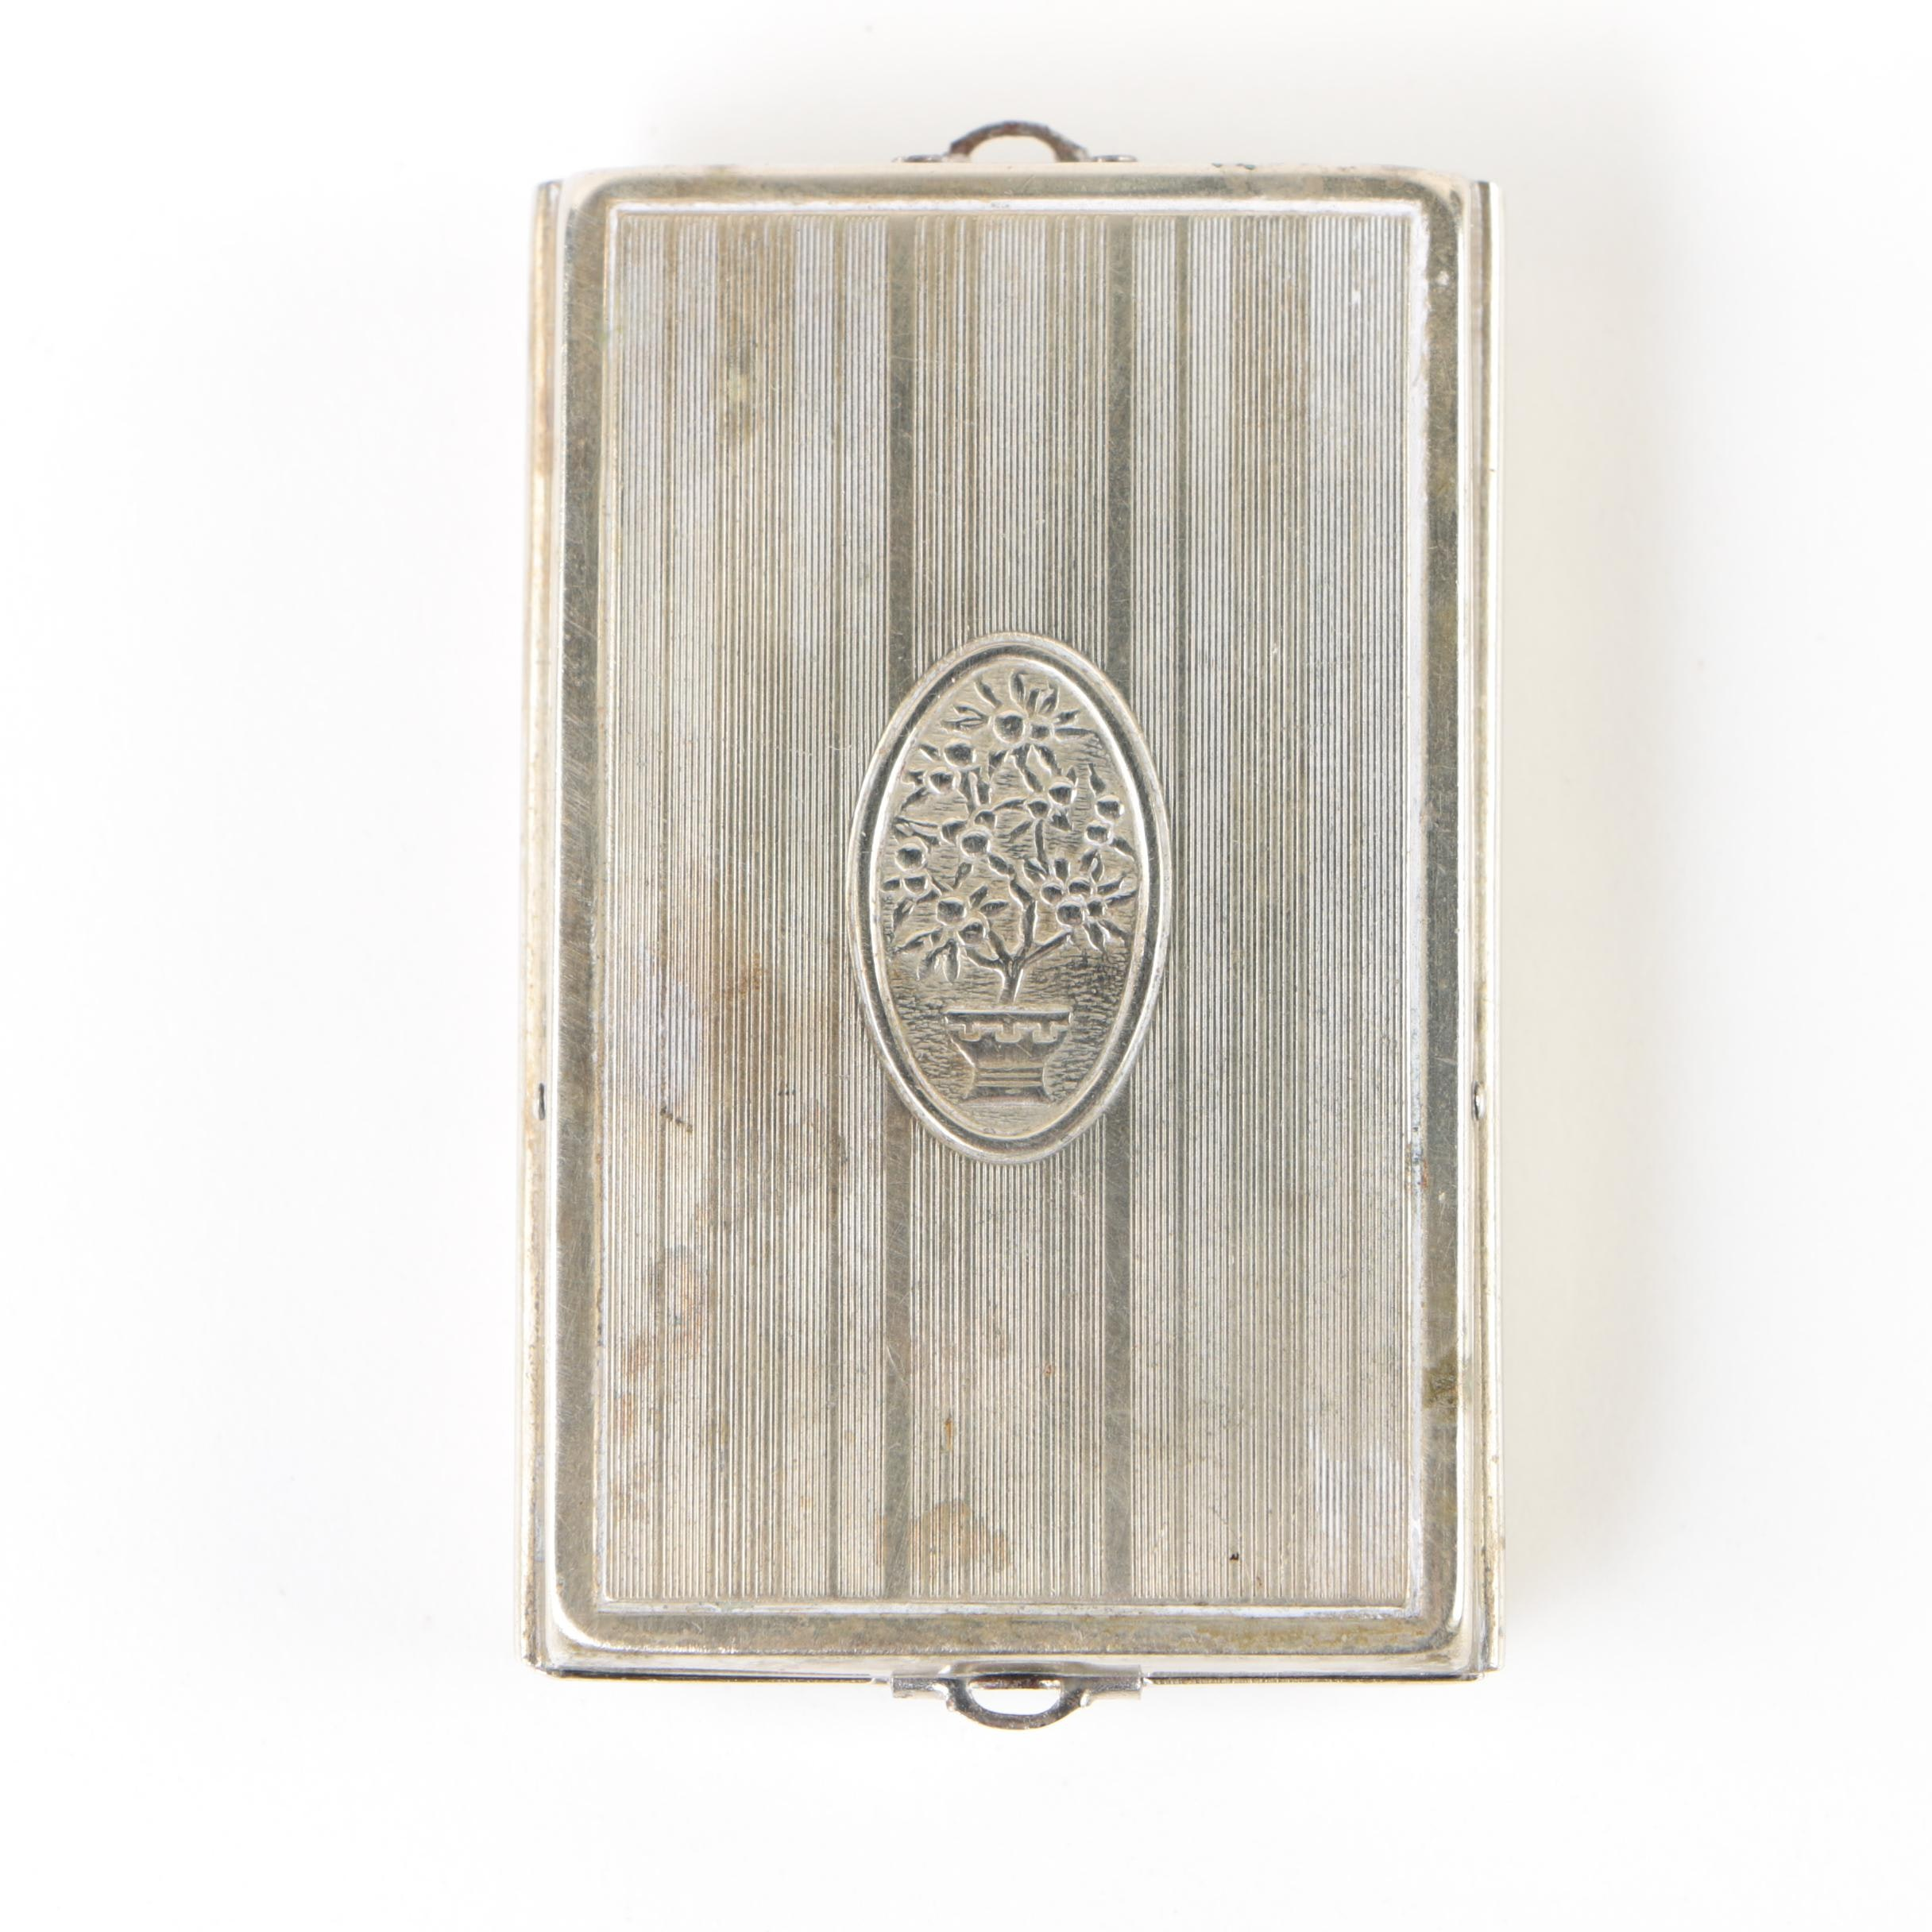 Vintage Silver-Plated Sliding Mirror Compact